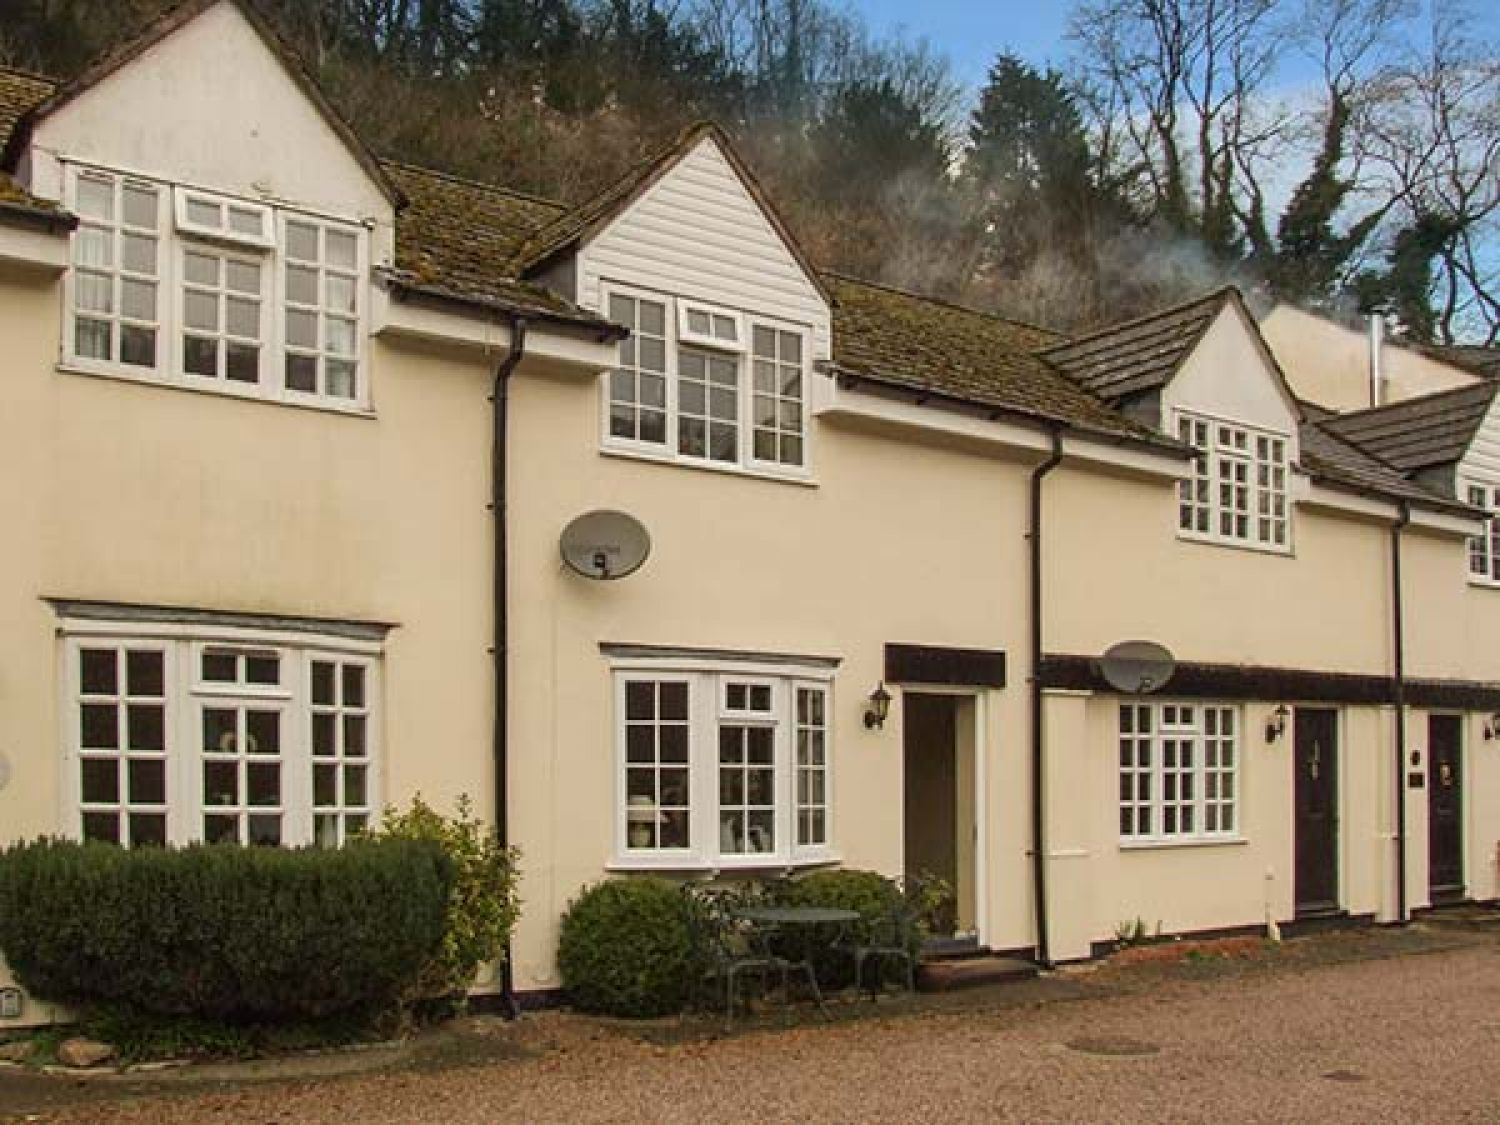 5 Wye Rapid Cottages - Herefordshire - 920651 - photo 1